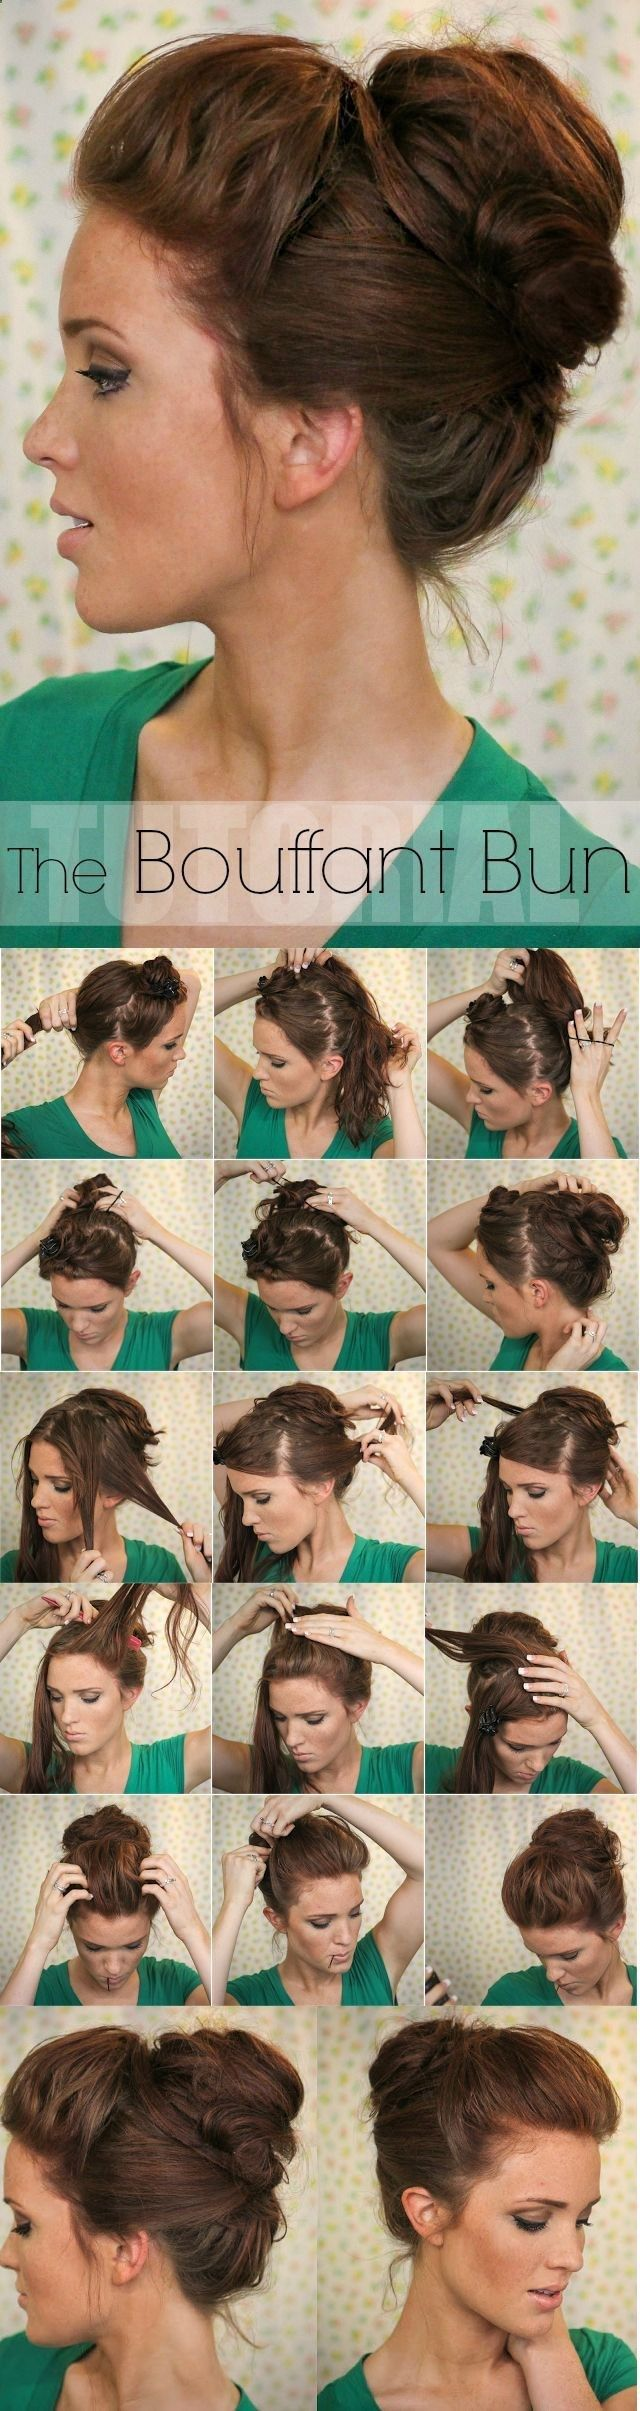 super easy updo hairstyles tutorials hair stuff pinterest